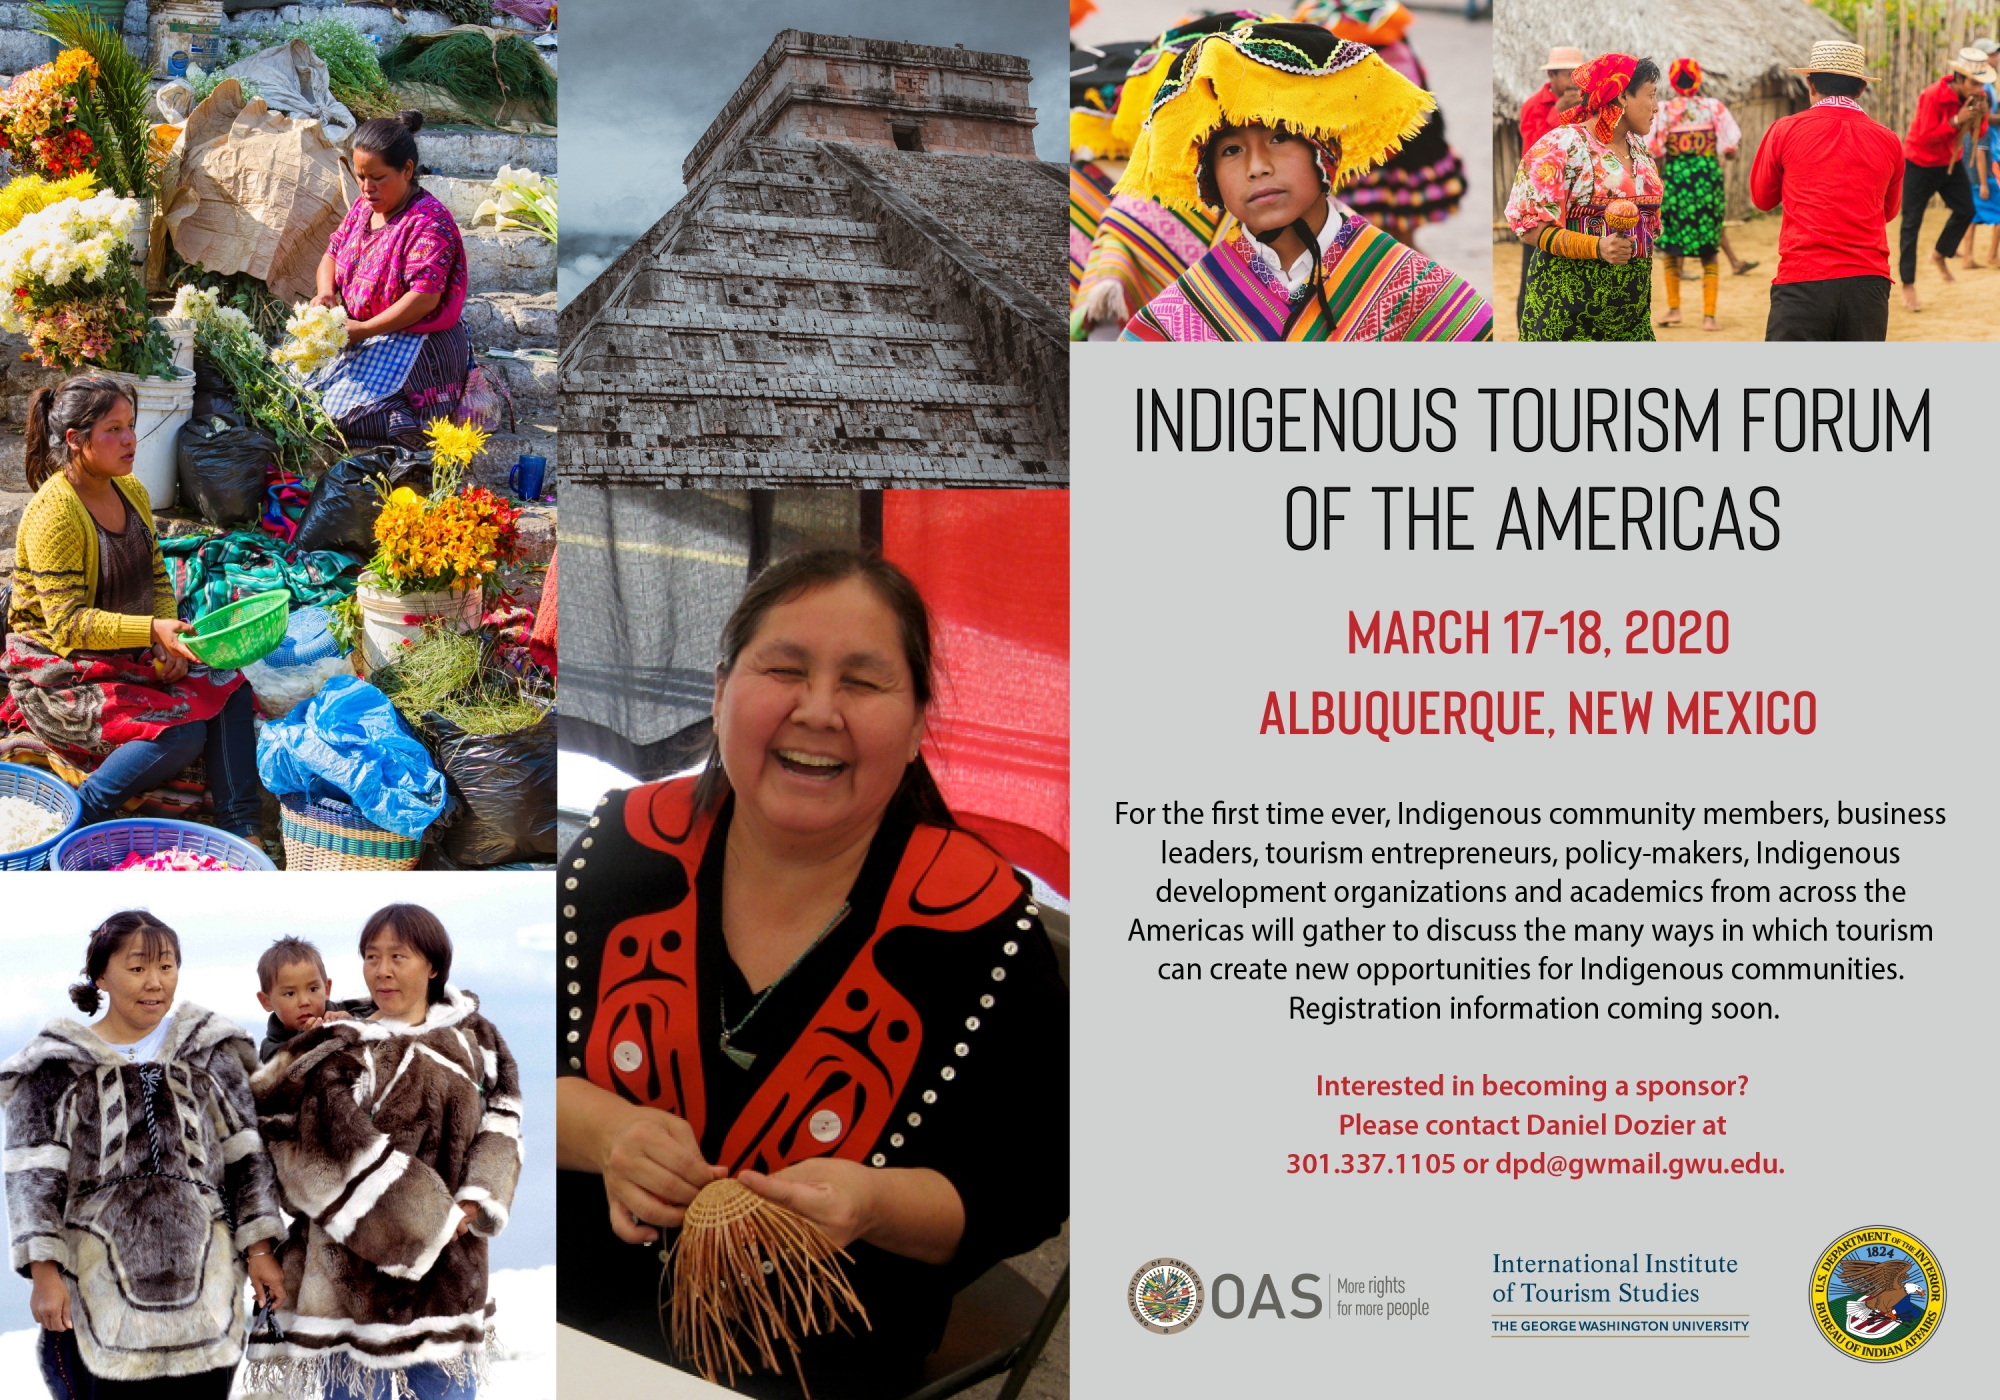 photo - GWSB IITS Indigenous Tourism Forum March 2020 flyer